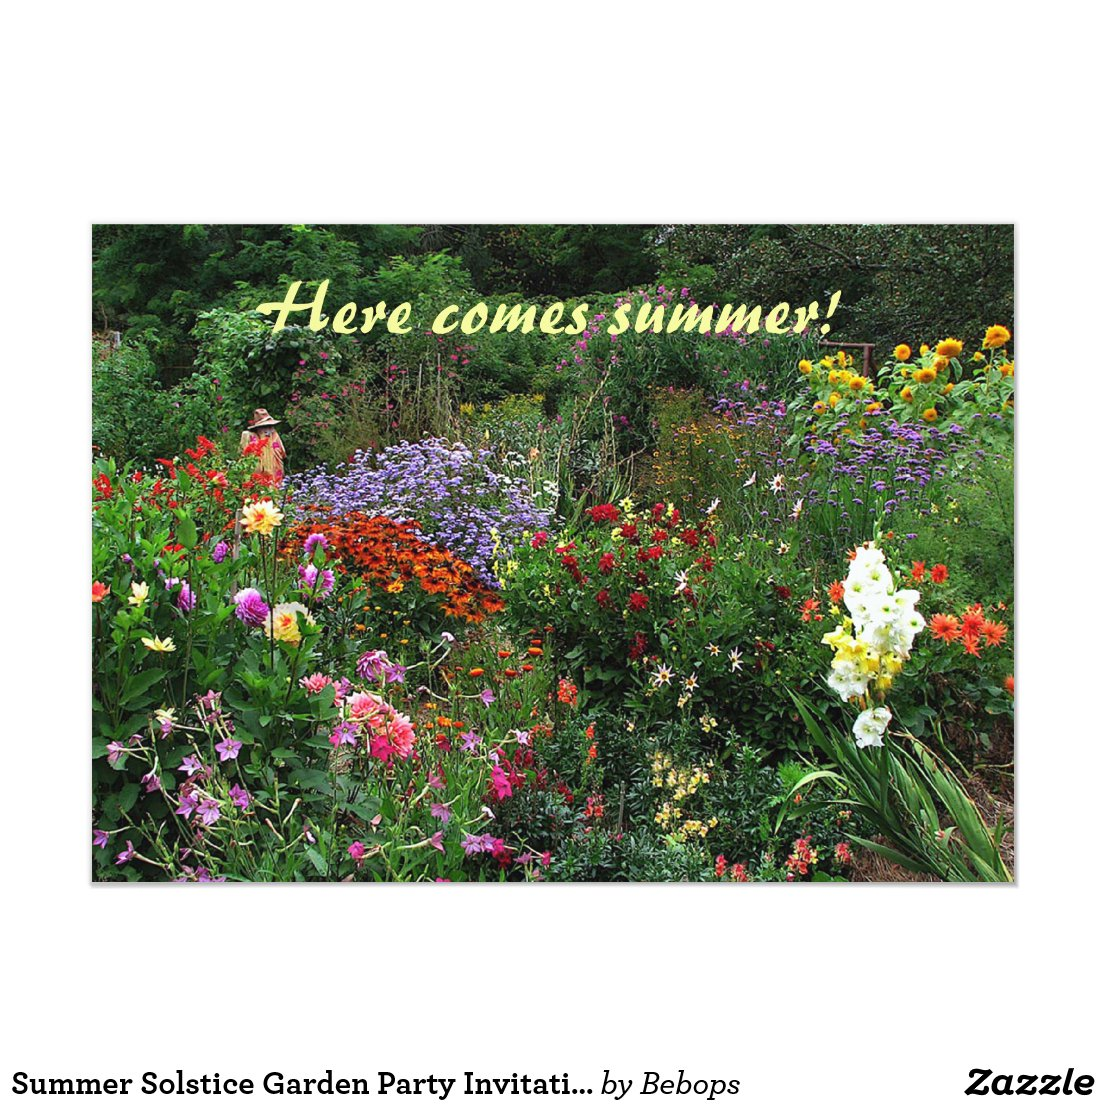 Summer Solstice Garden Party Invitation